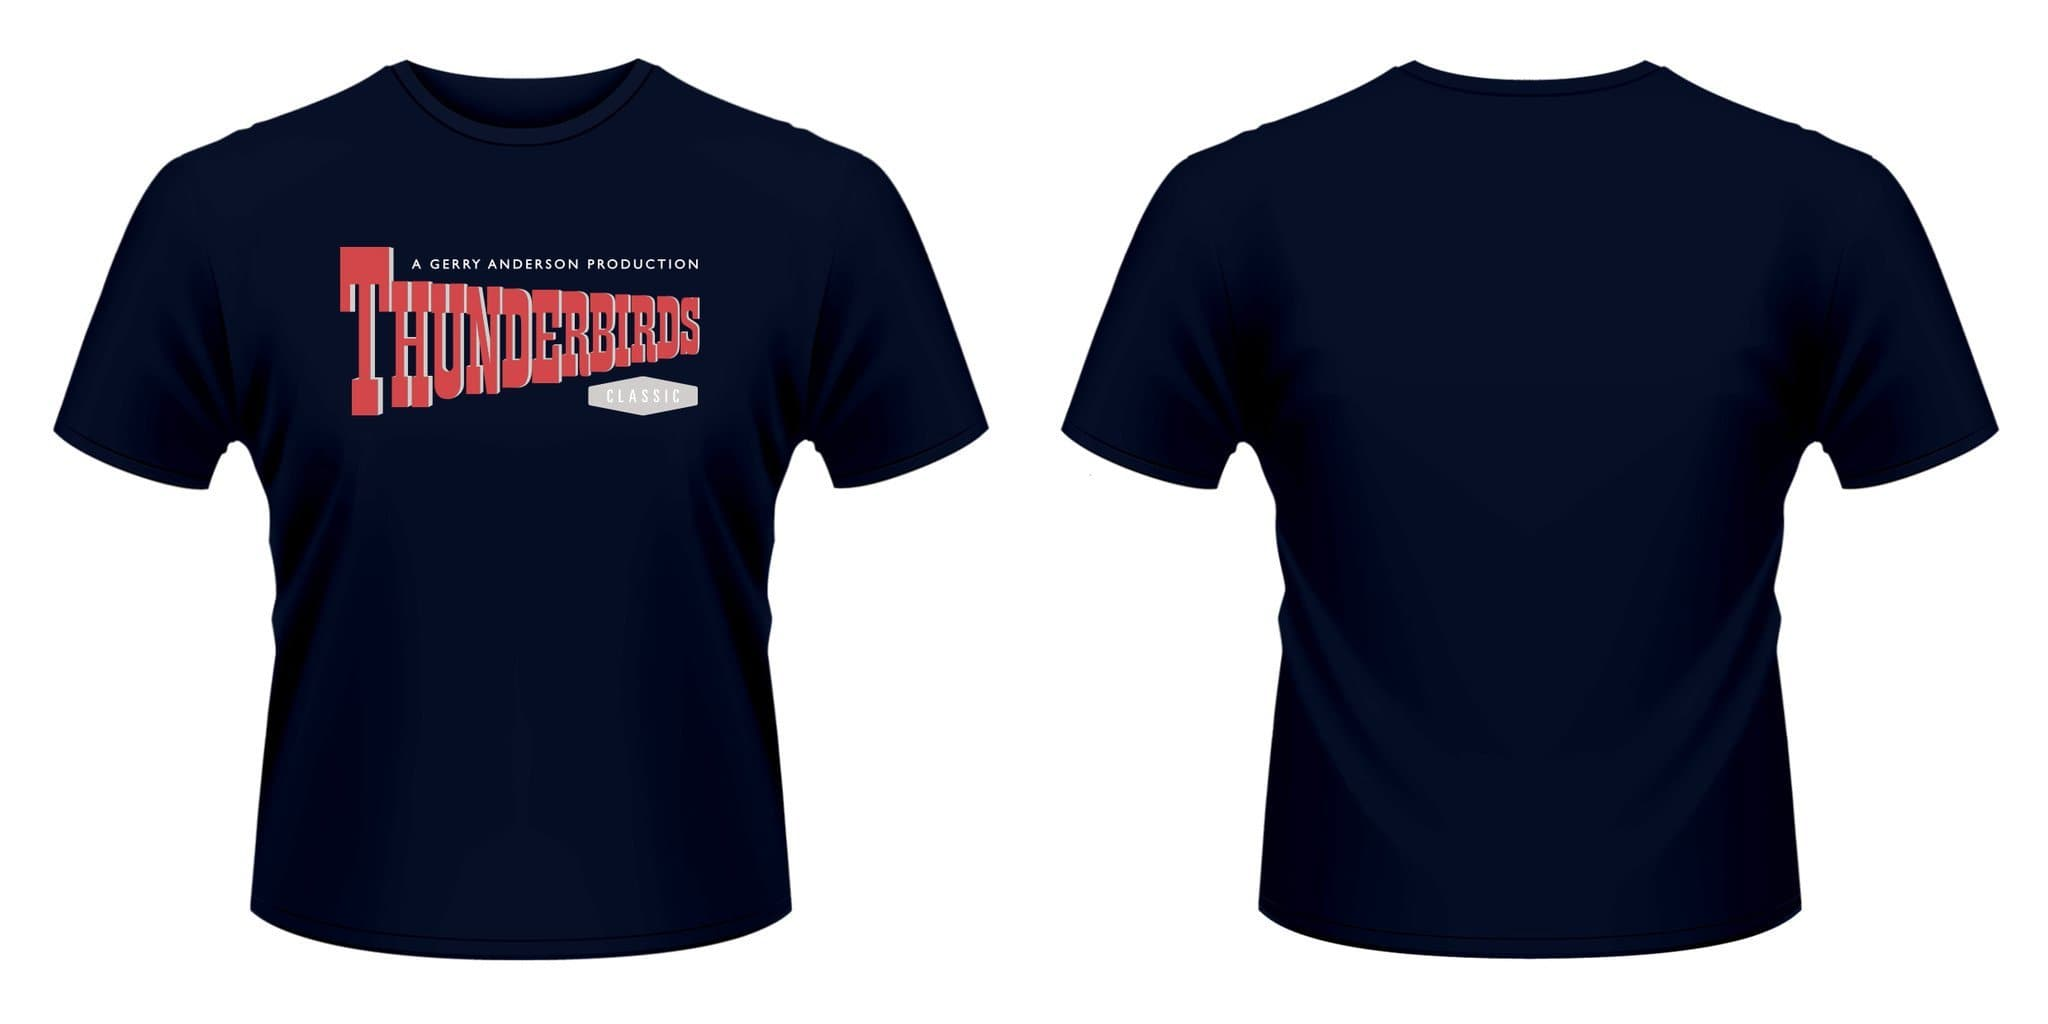 Thunderbirds logo - Thunderbirds T-shirt - Gerry Anderson Official - 2